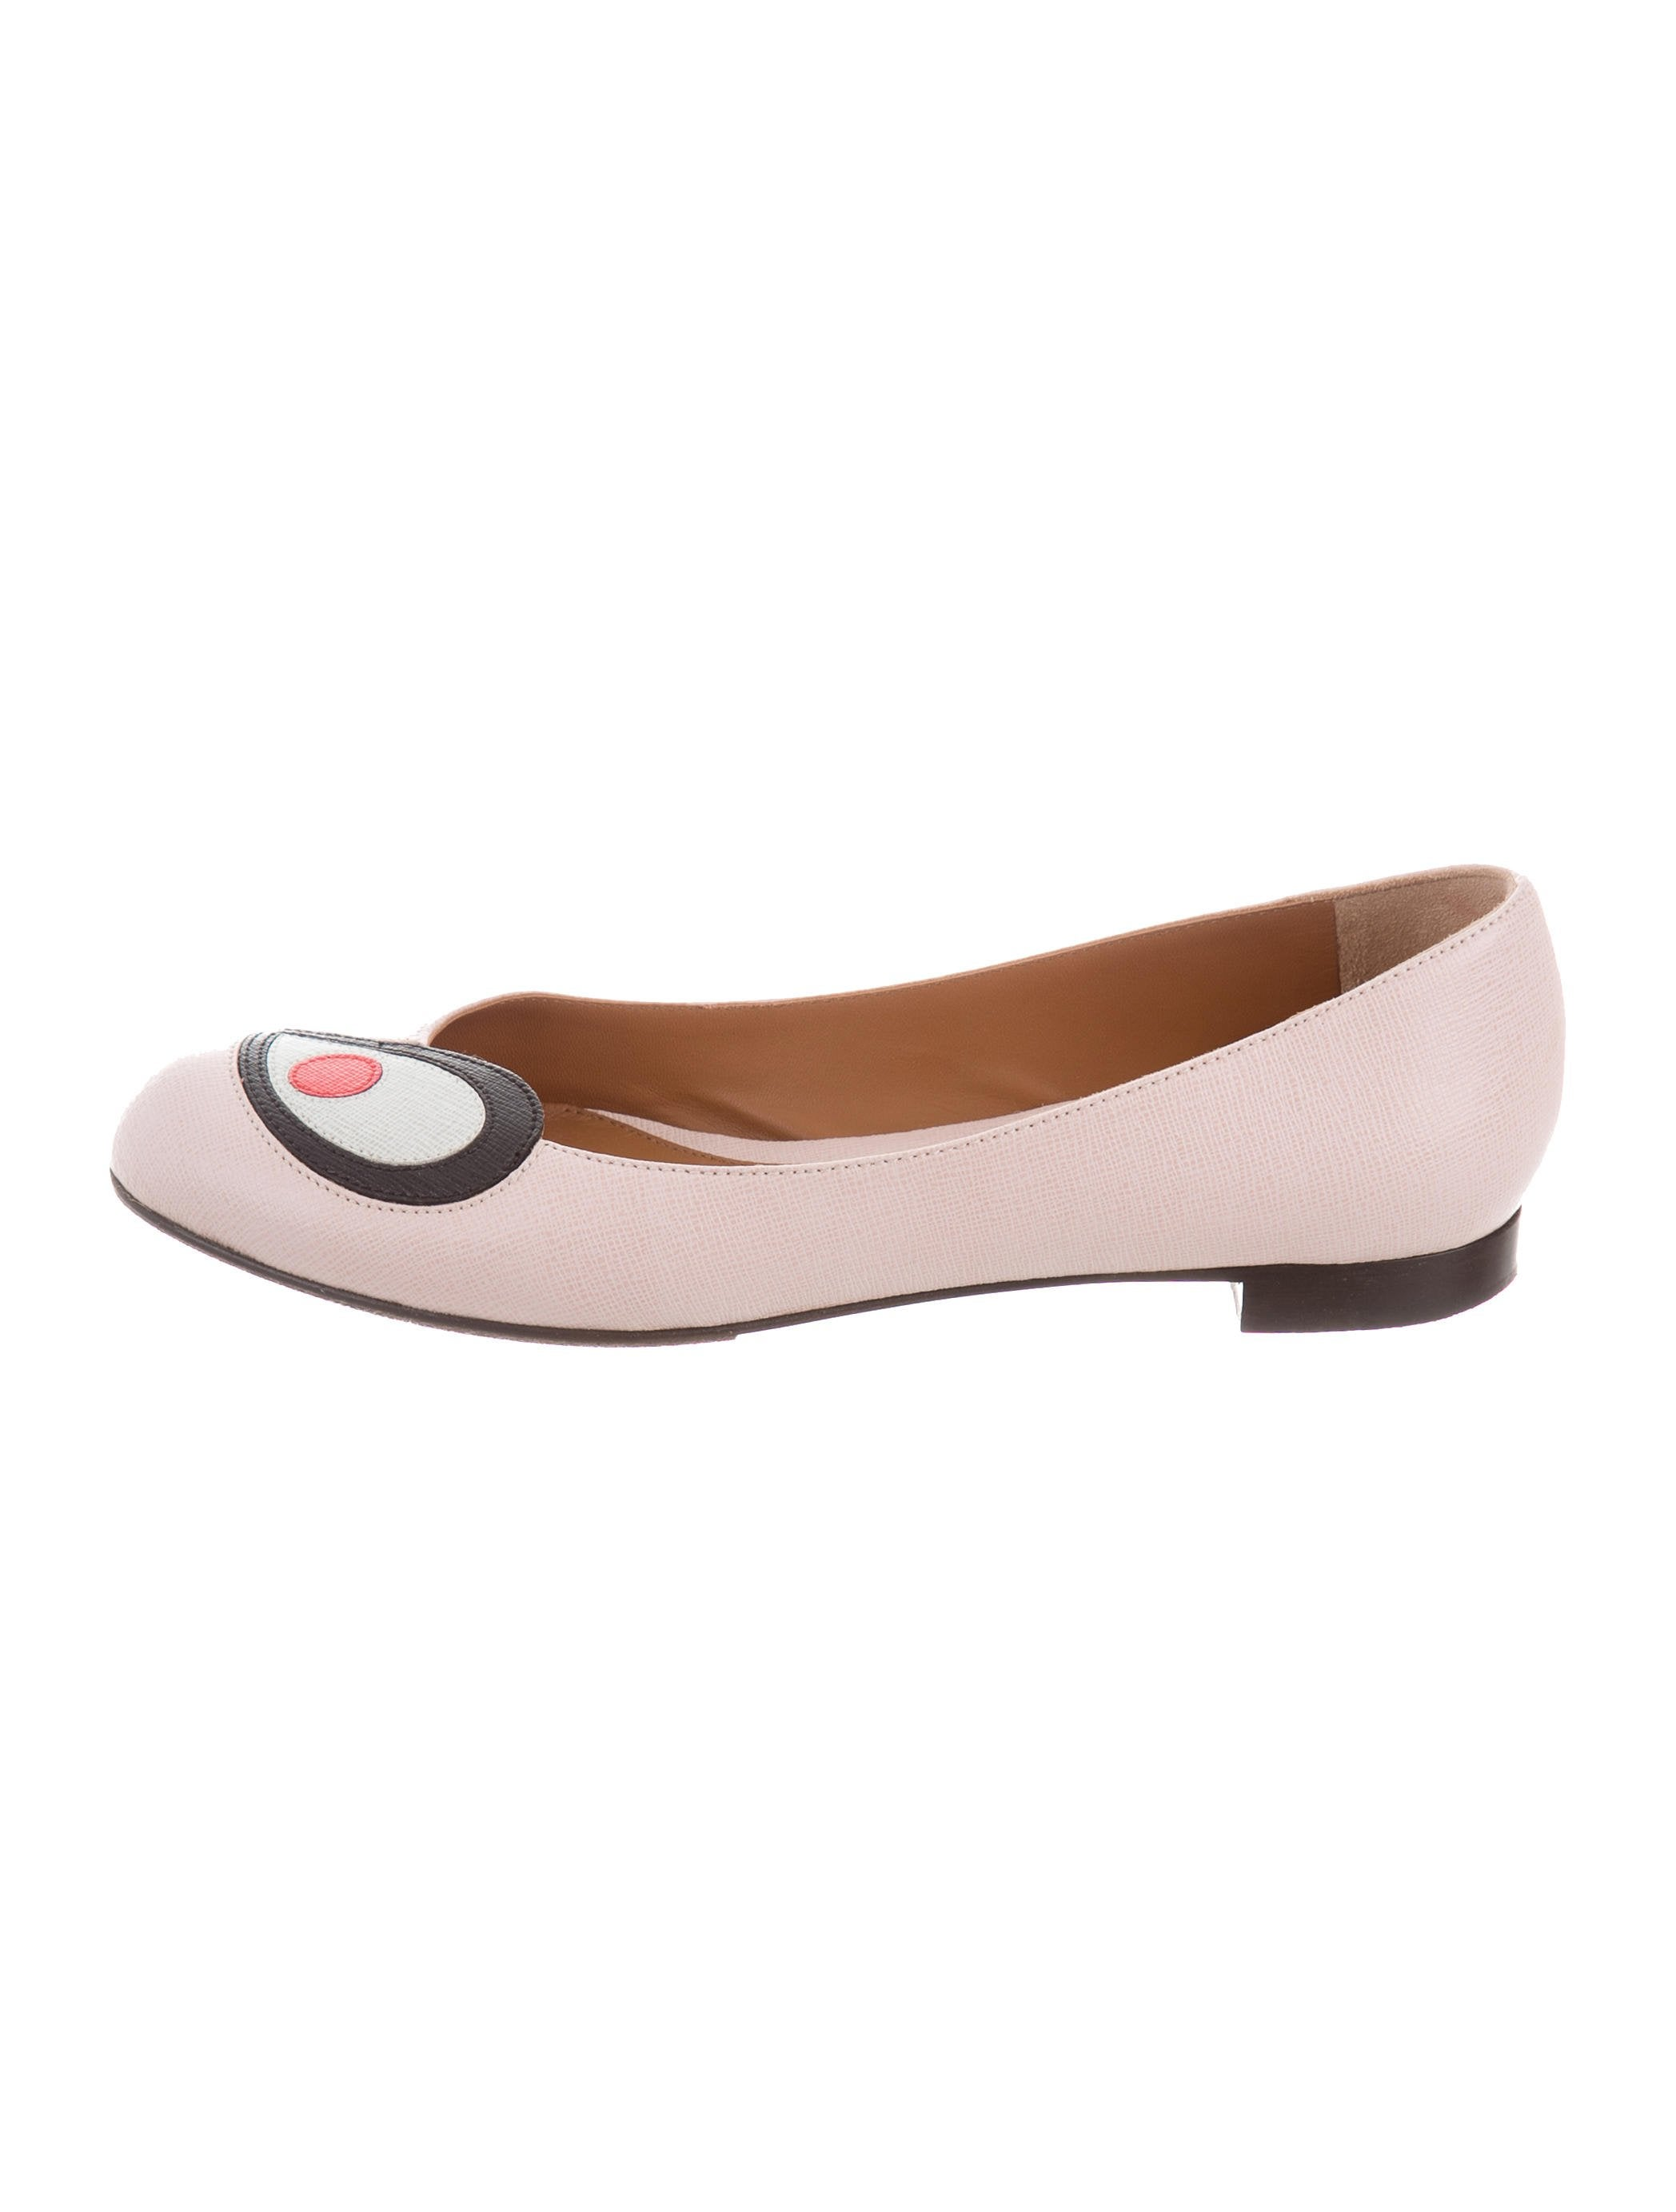 extremely cheap online enjoy for sale Fendi Leather Round-Toe Flats amazon sale looking for buy cheap classic aAxmYu